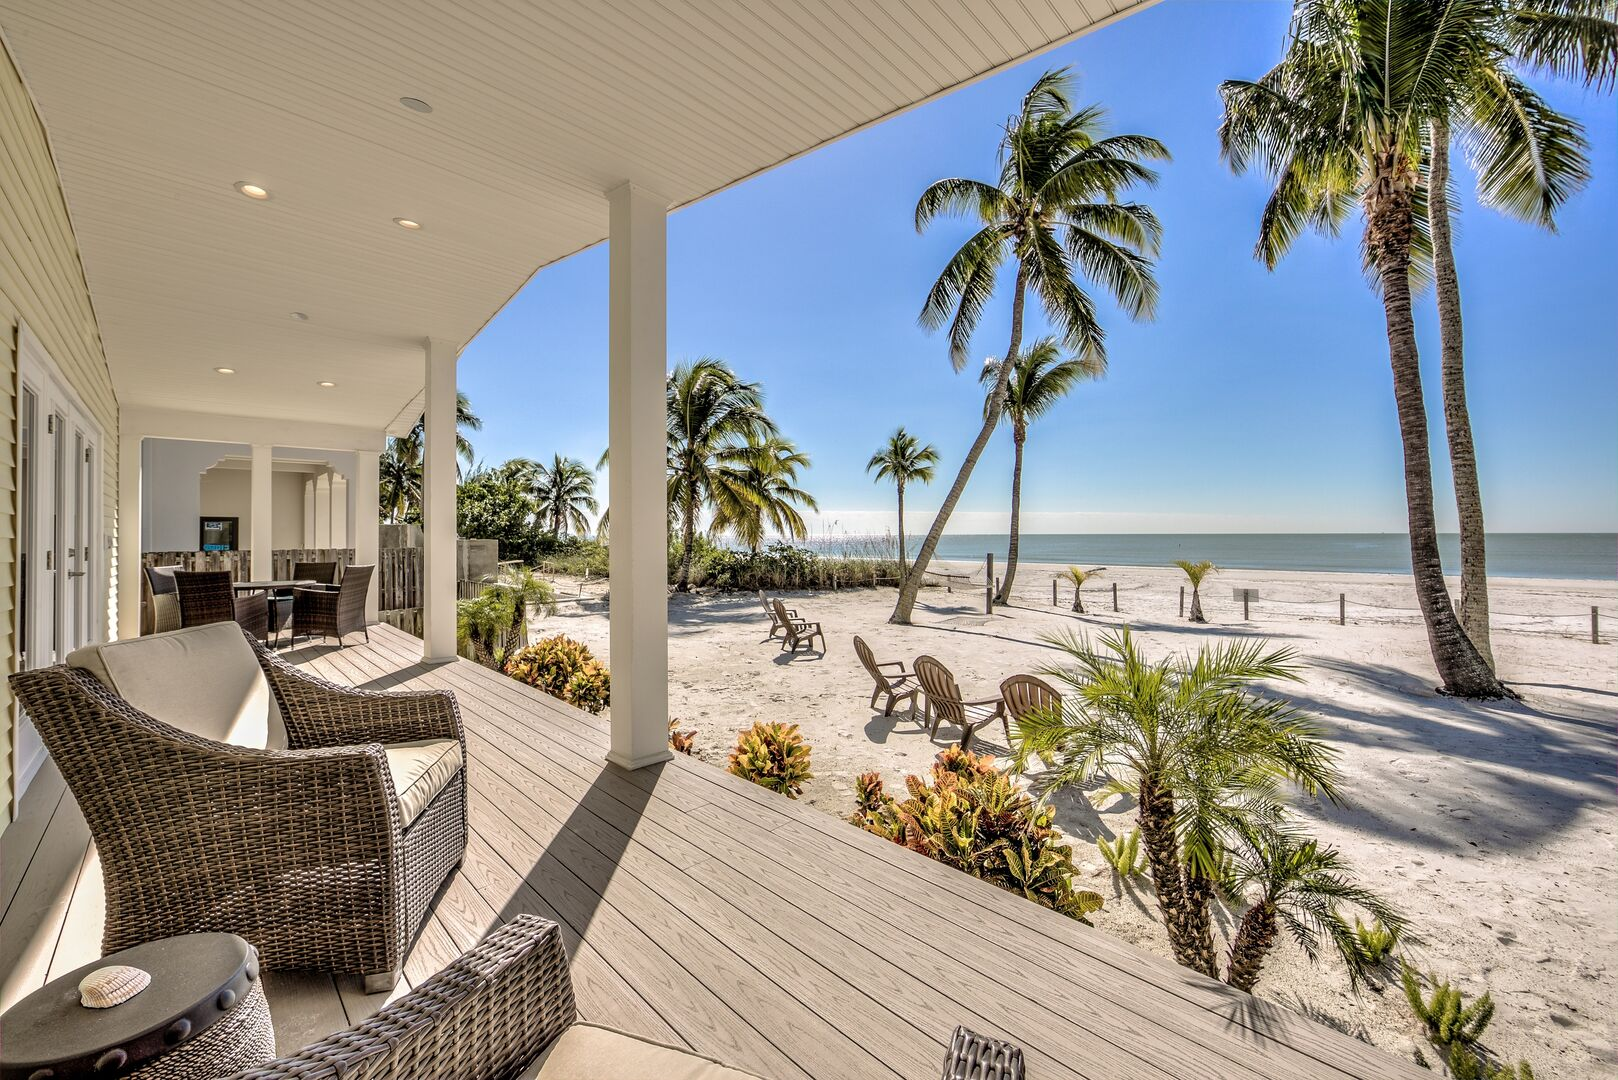 Beachfront patio seating in our Fort Myers cottage